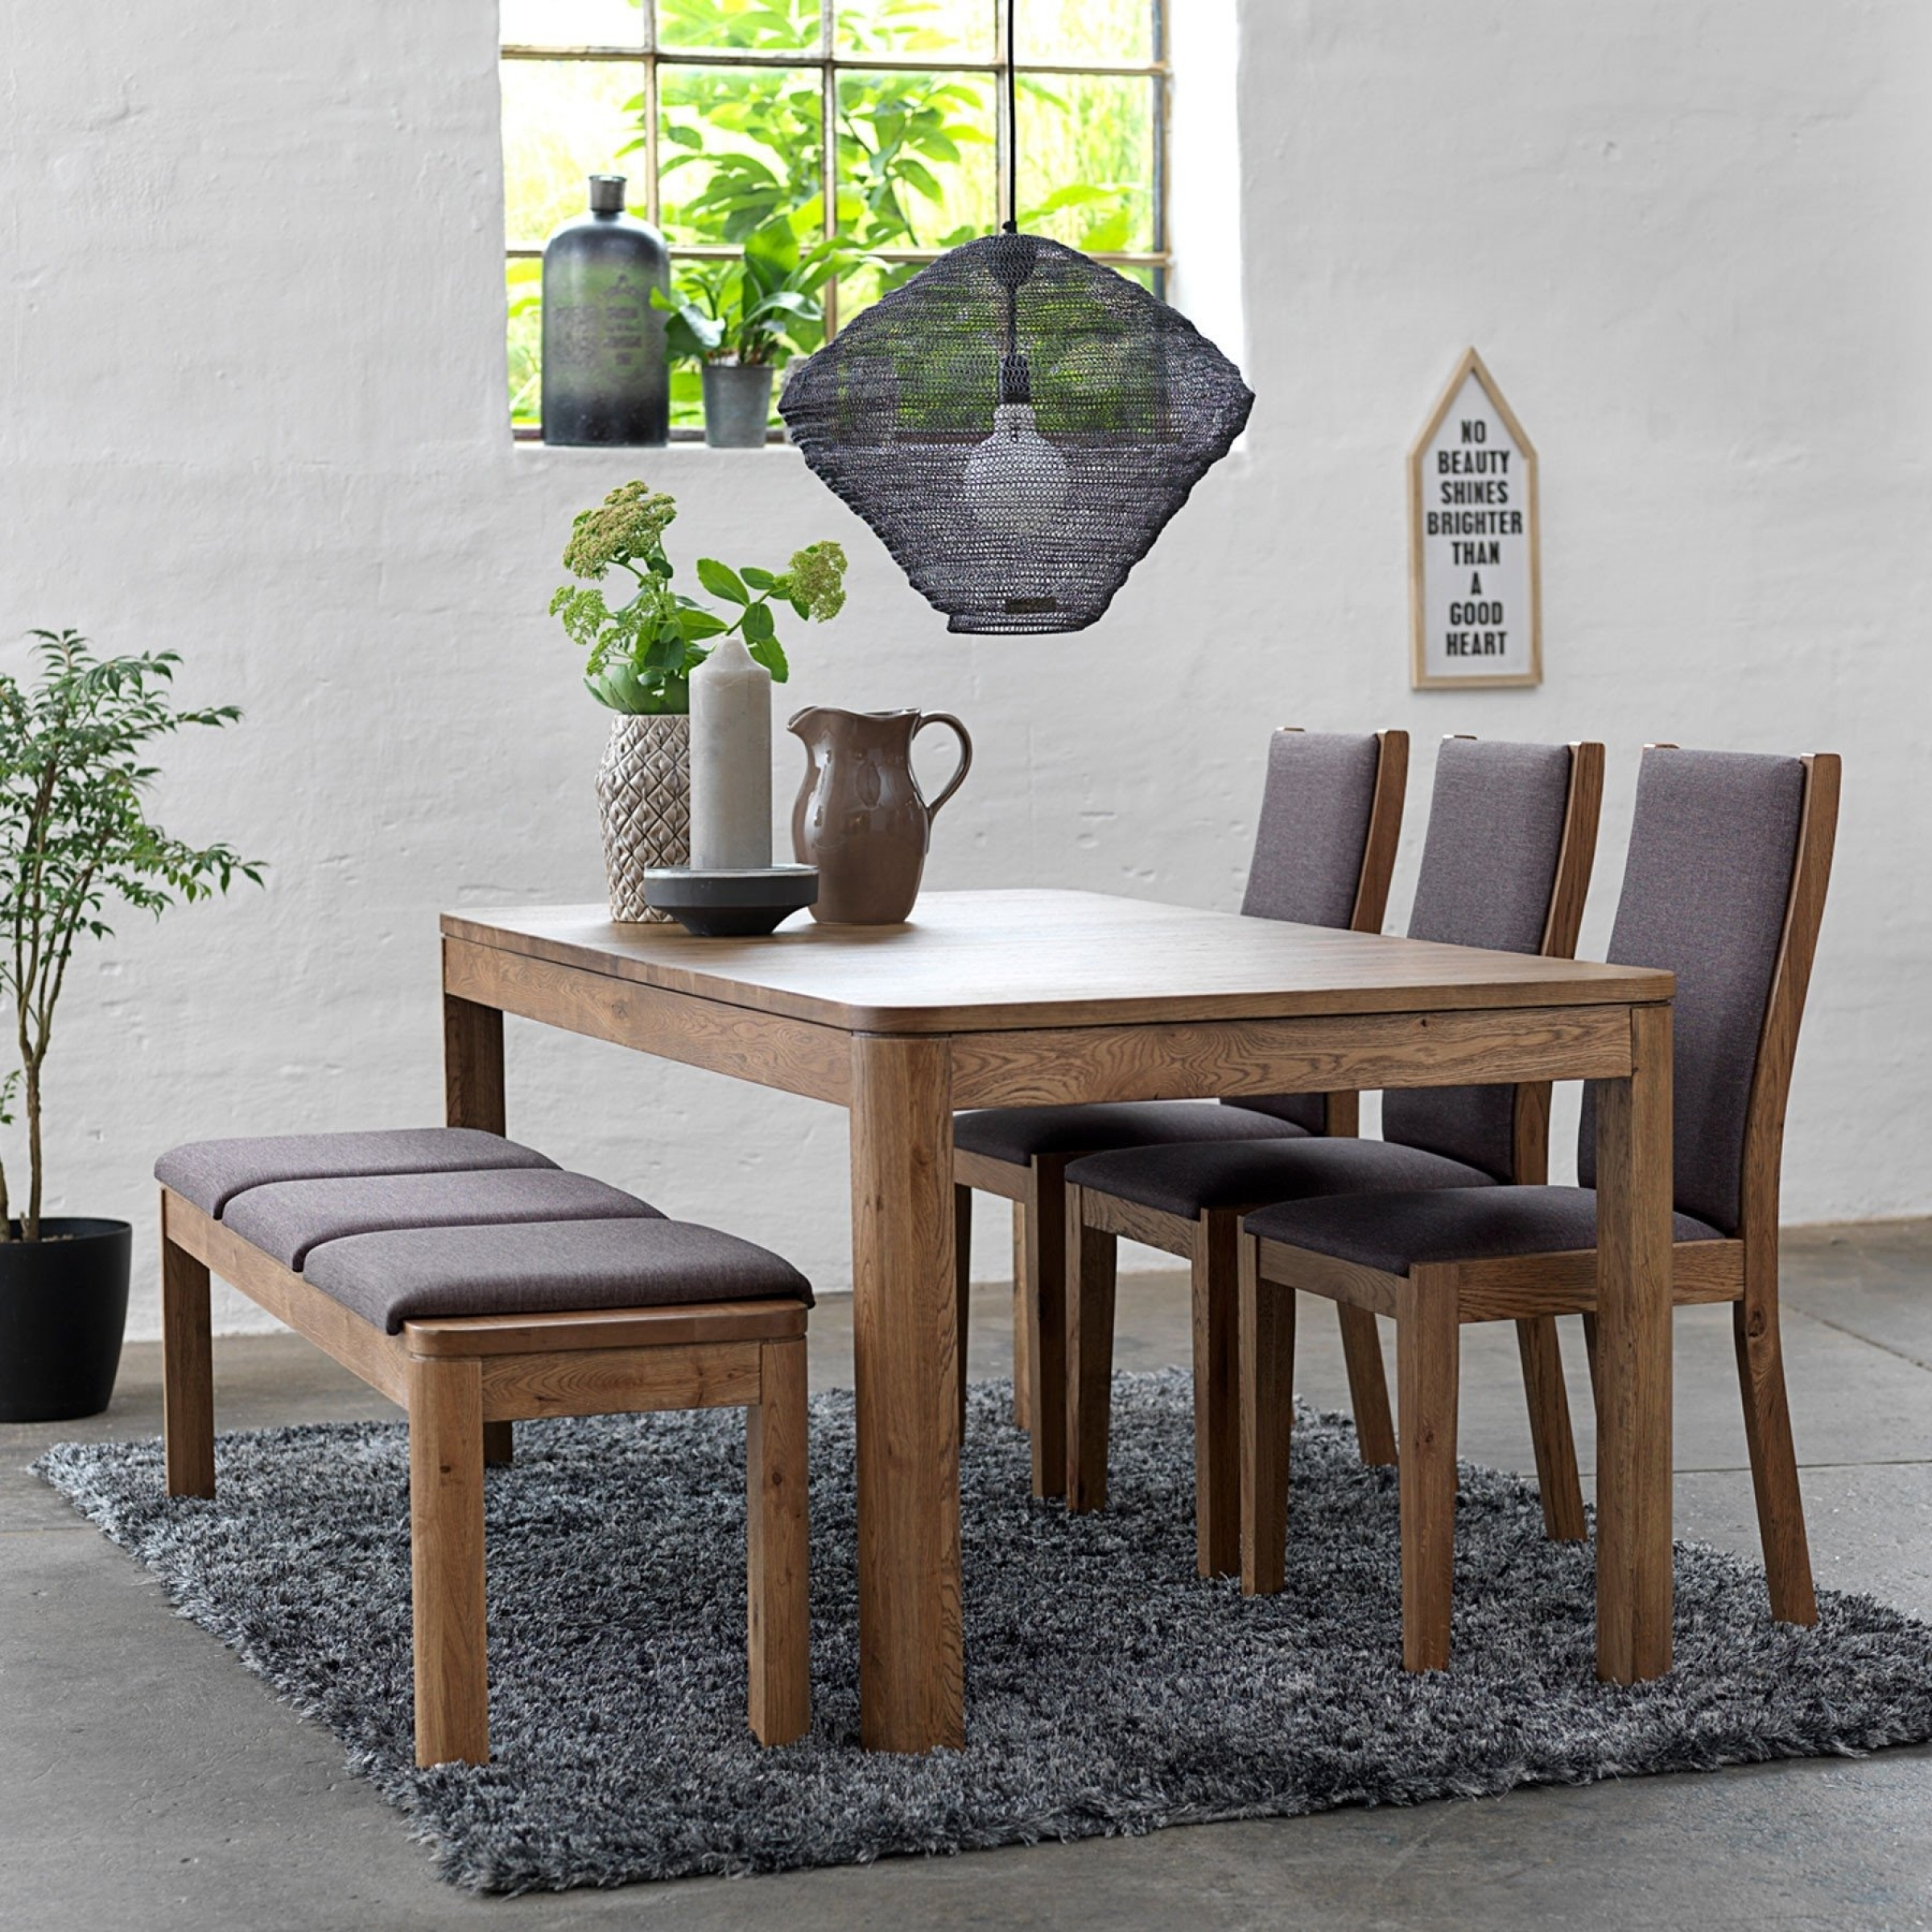 Dining Table With Bench Visual Hunt Rustic Kitchen Wooden For